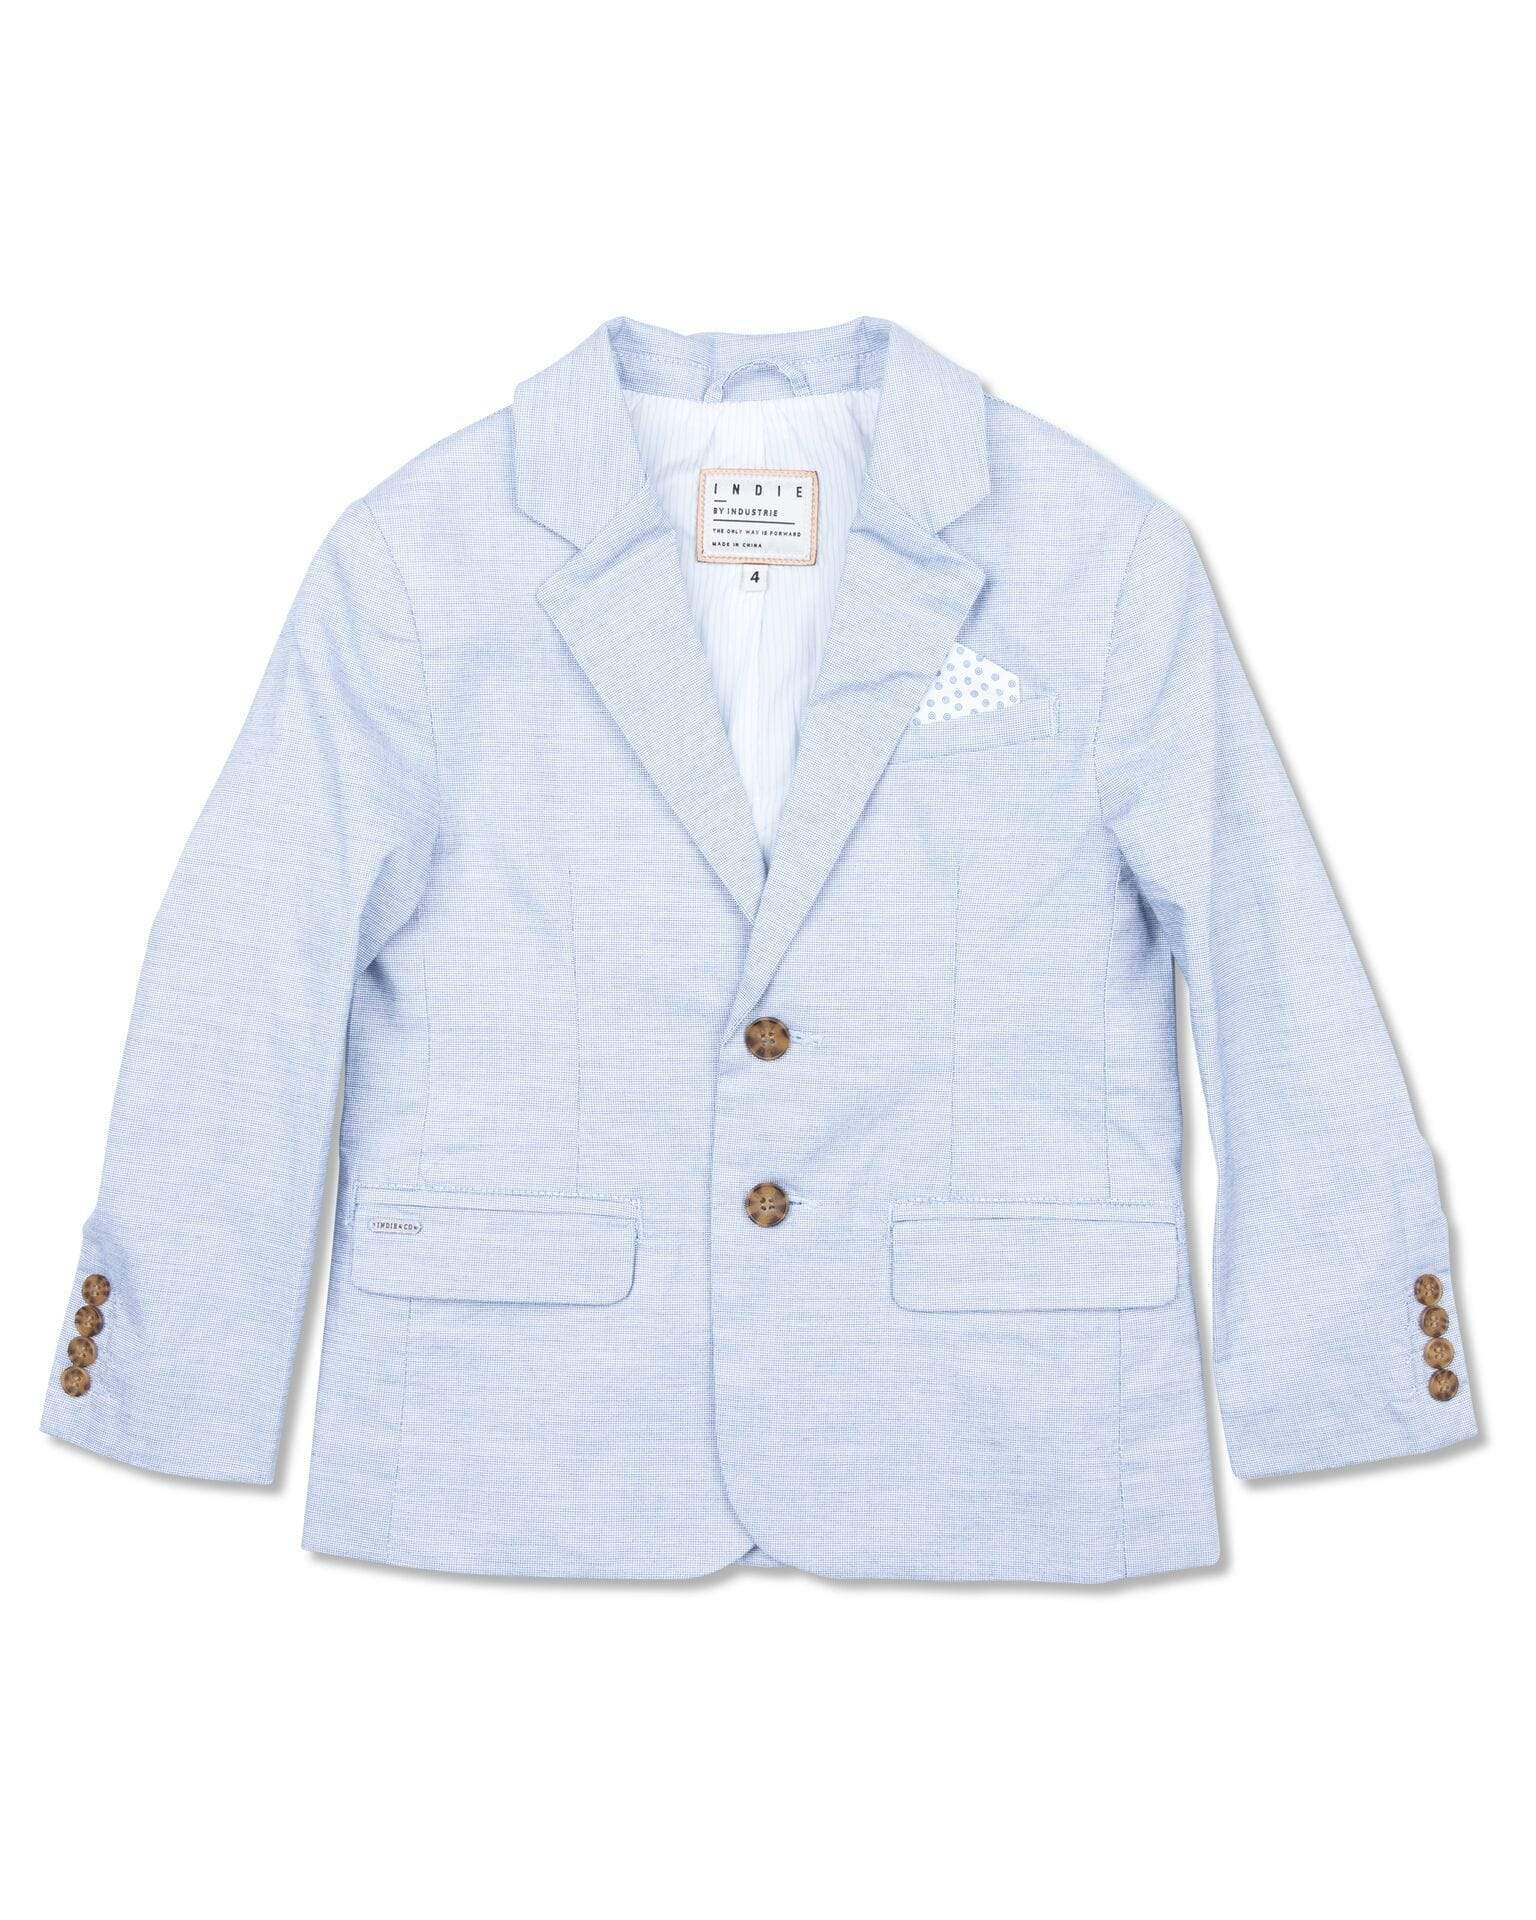 Indie Kids Jackets 8 Indie Kids Houndstooth Blazer Blue